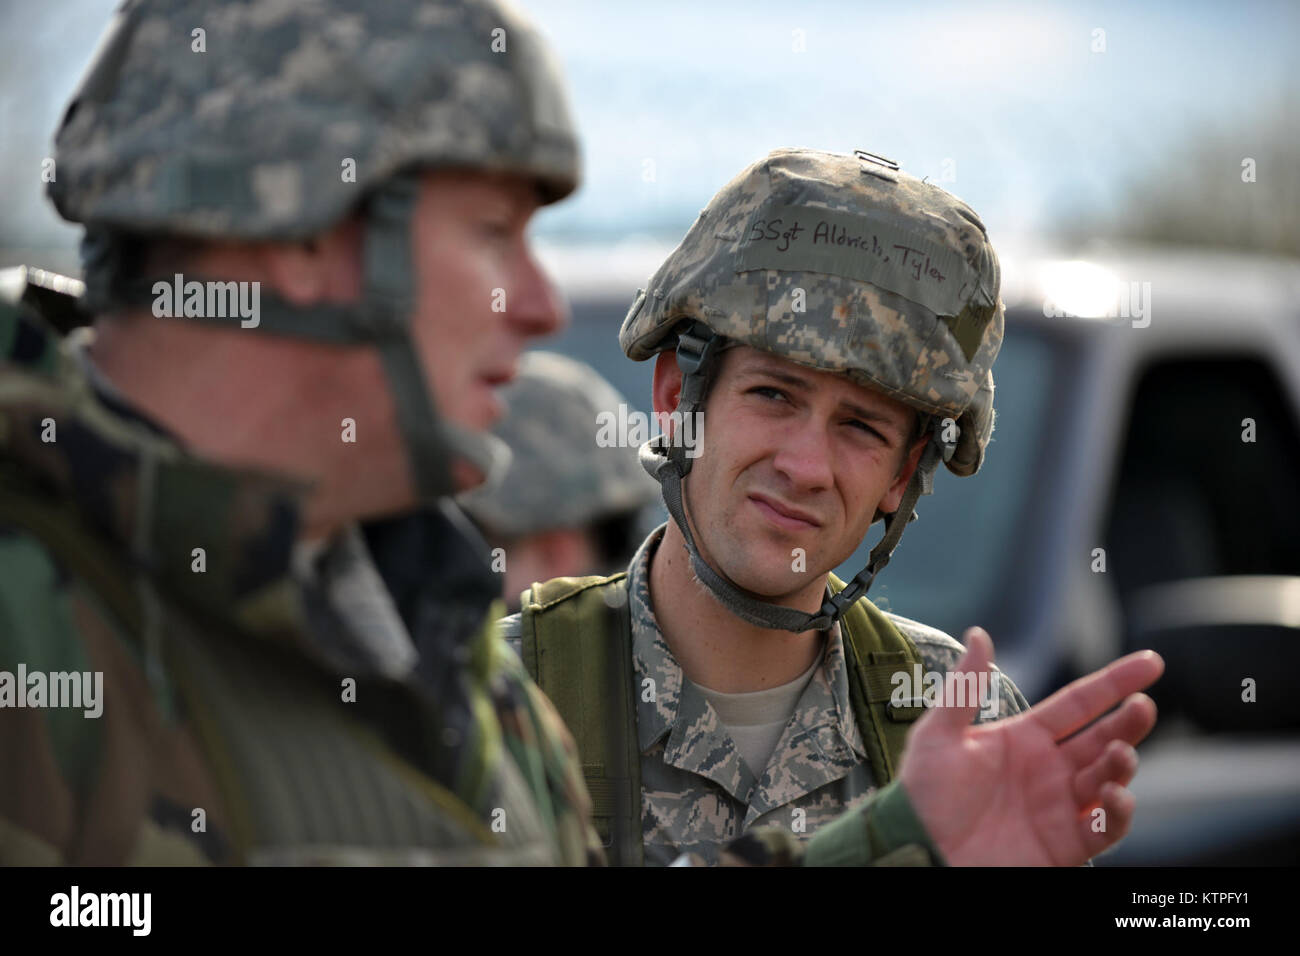 PERRY, GA - Staff Sergeant Tyler Aldrich, an Air National Guard Emergency Manager, listens during a mission brief - Stock Image